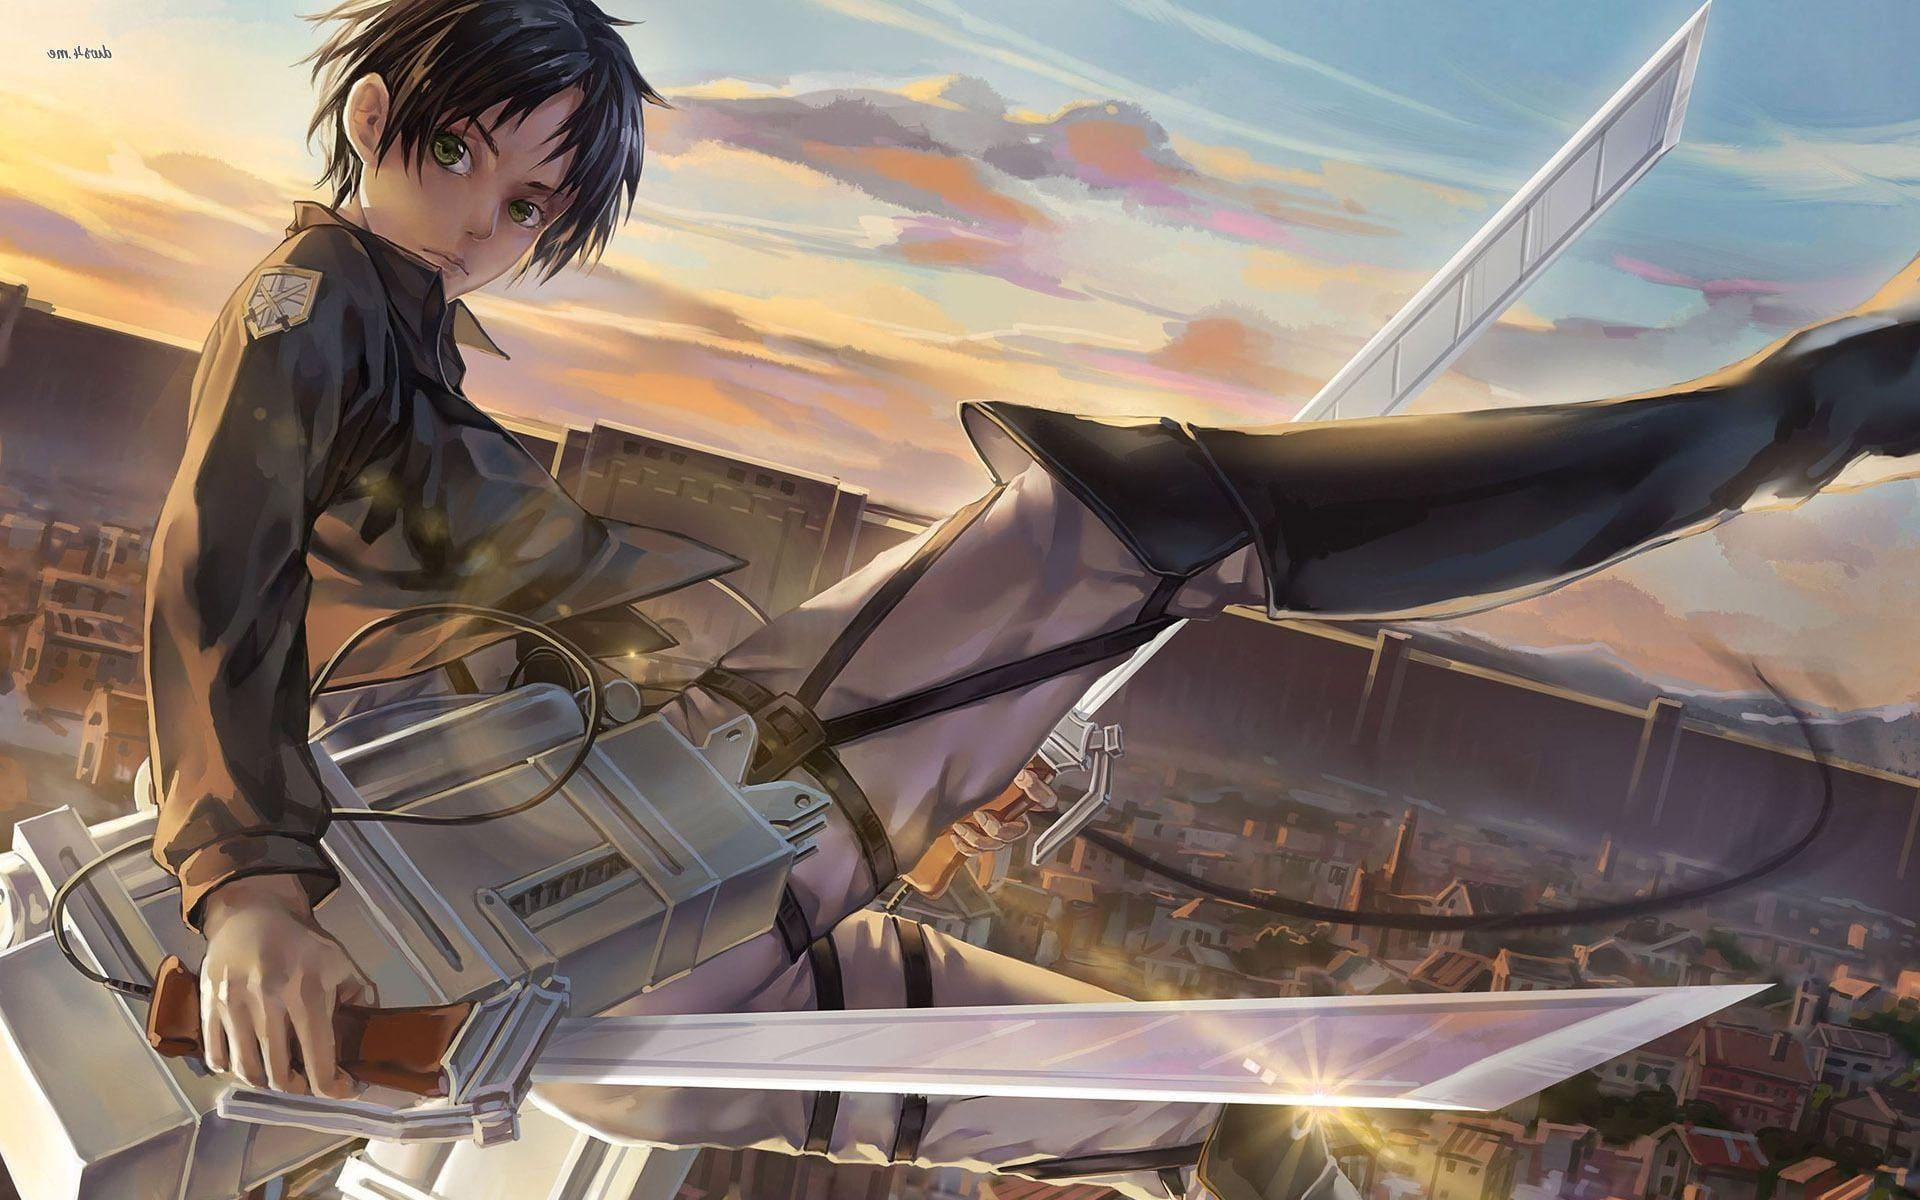 17+ Eren Yeager Attack On Titan wallpapers HD Download